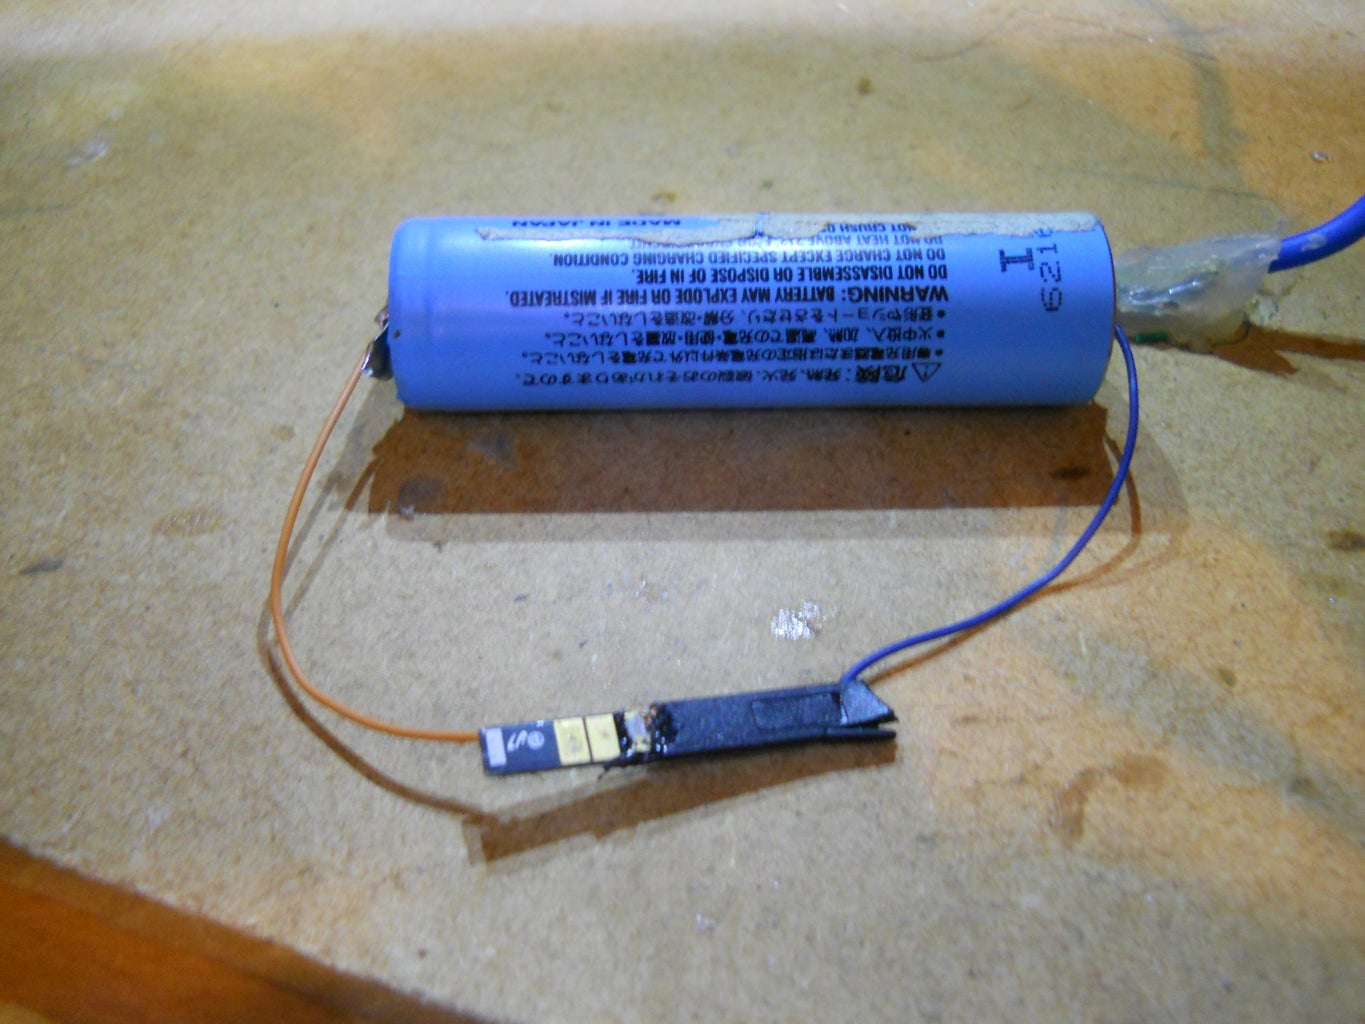 Heat Up Your Soldering Iron!